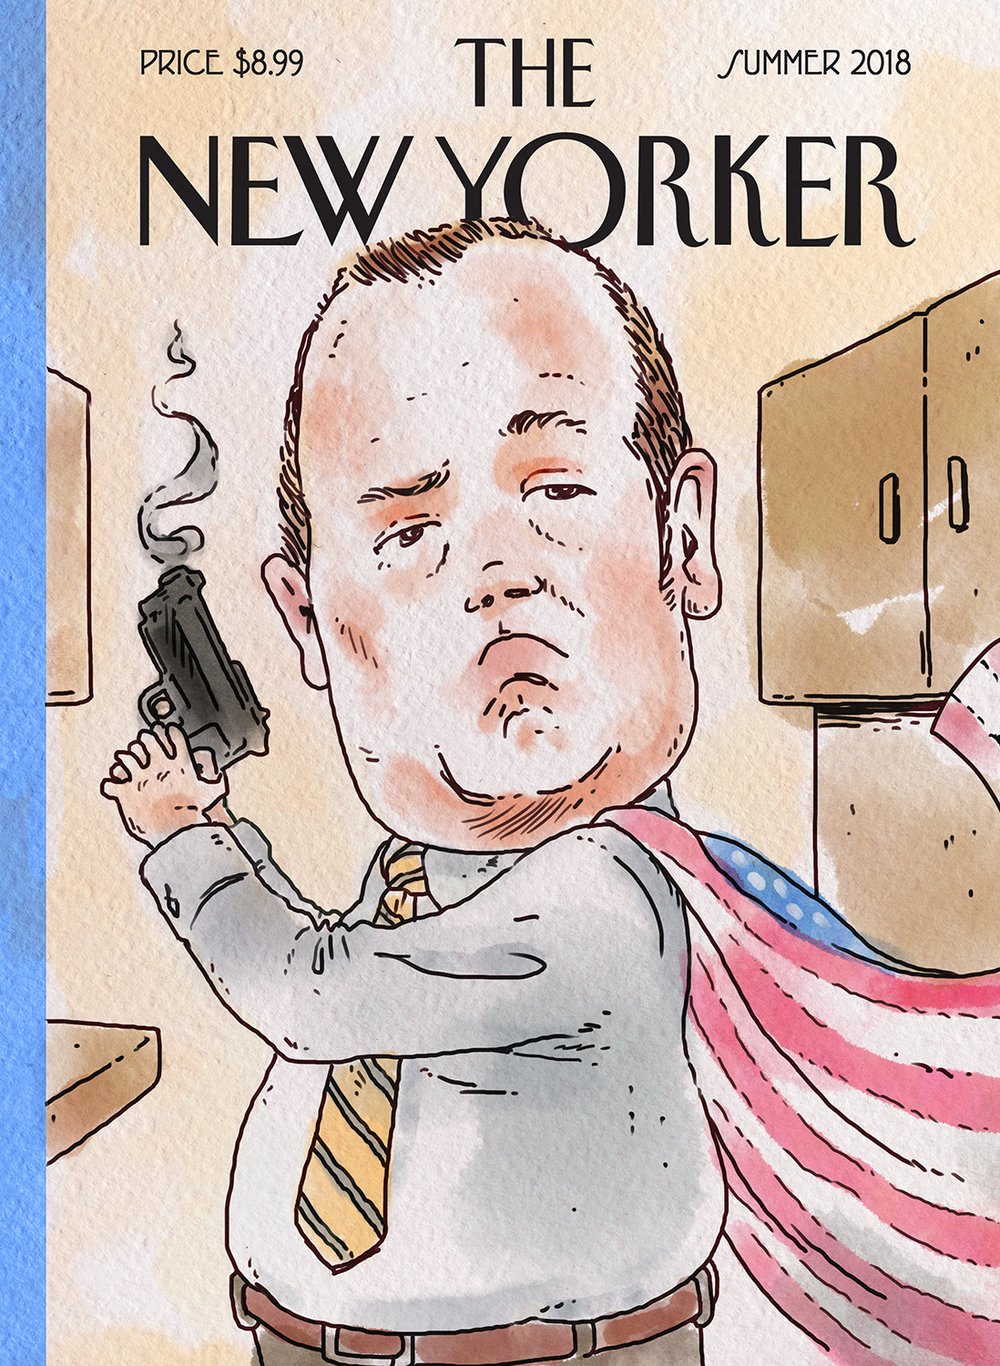 ORIENTATION_NEW-YORKER-COVER.jpg